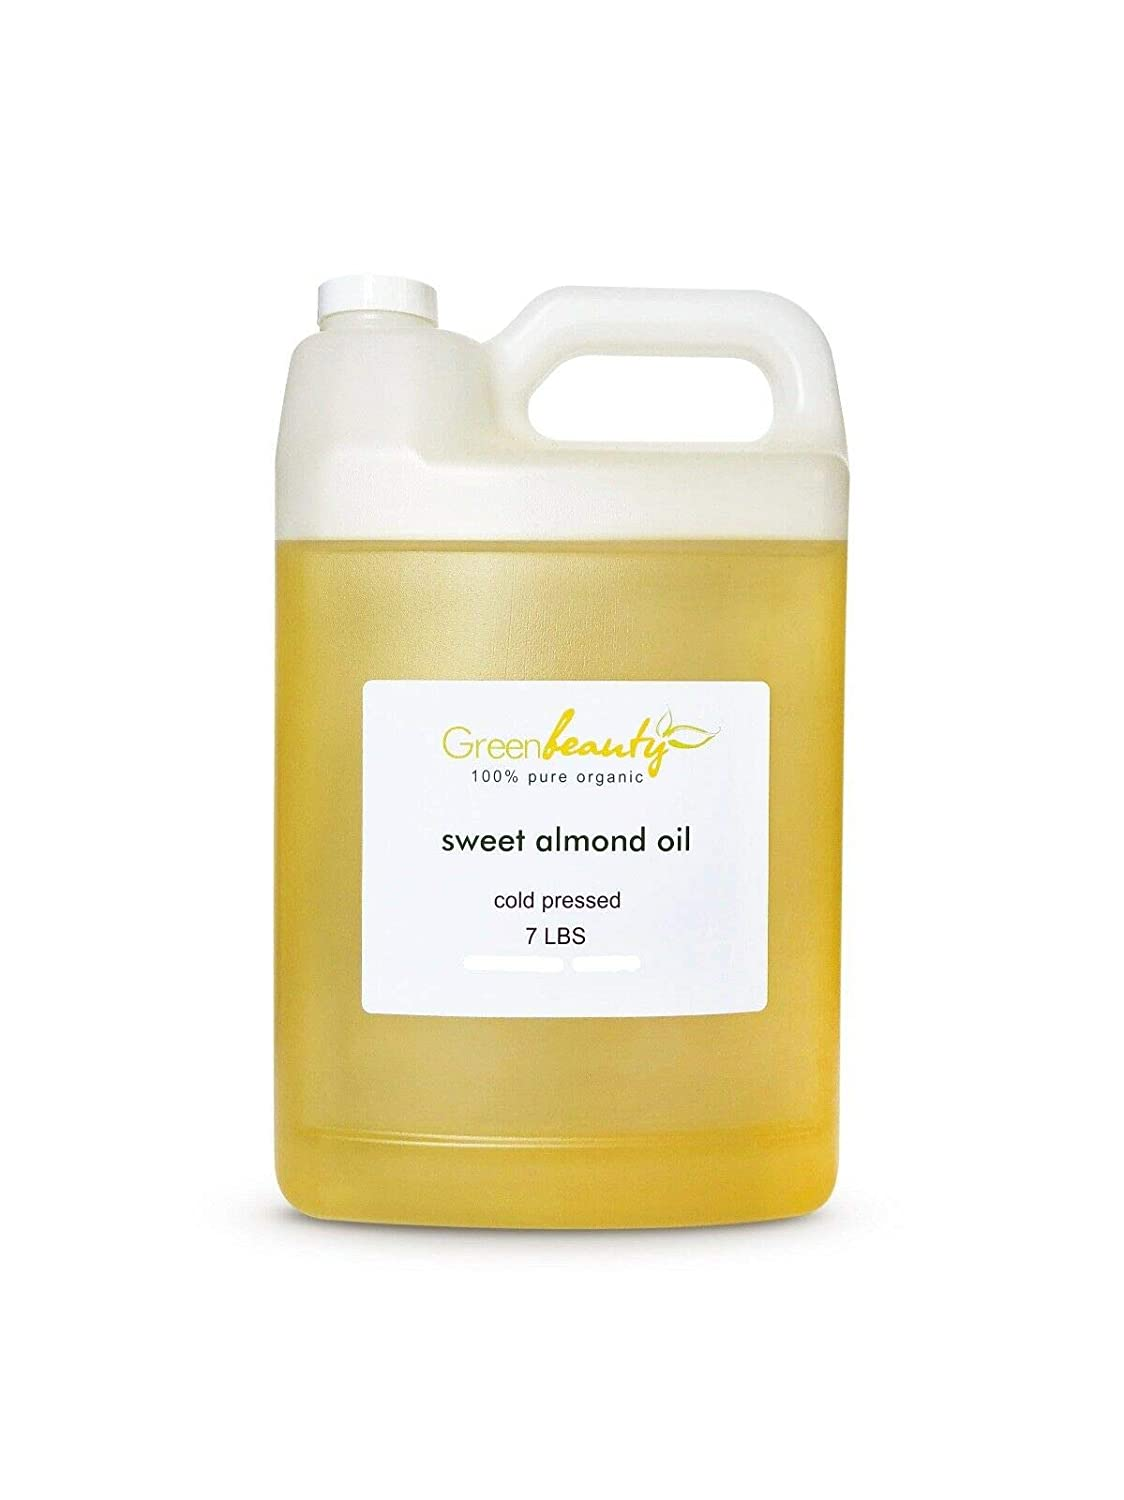 CARRIER OILS COLD PRESSED 100% PURE ORGANIC NATURAL 16 OZ TO 7 LBS (Almond Sweet Oil 32 OZ / 1 QUART)